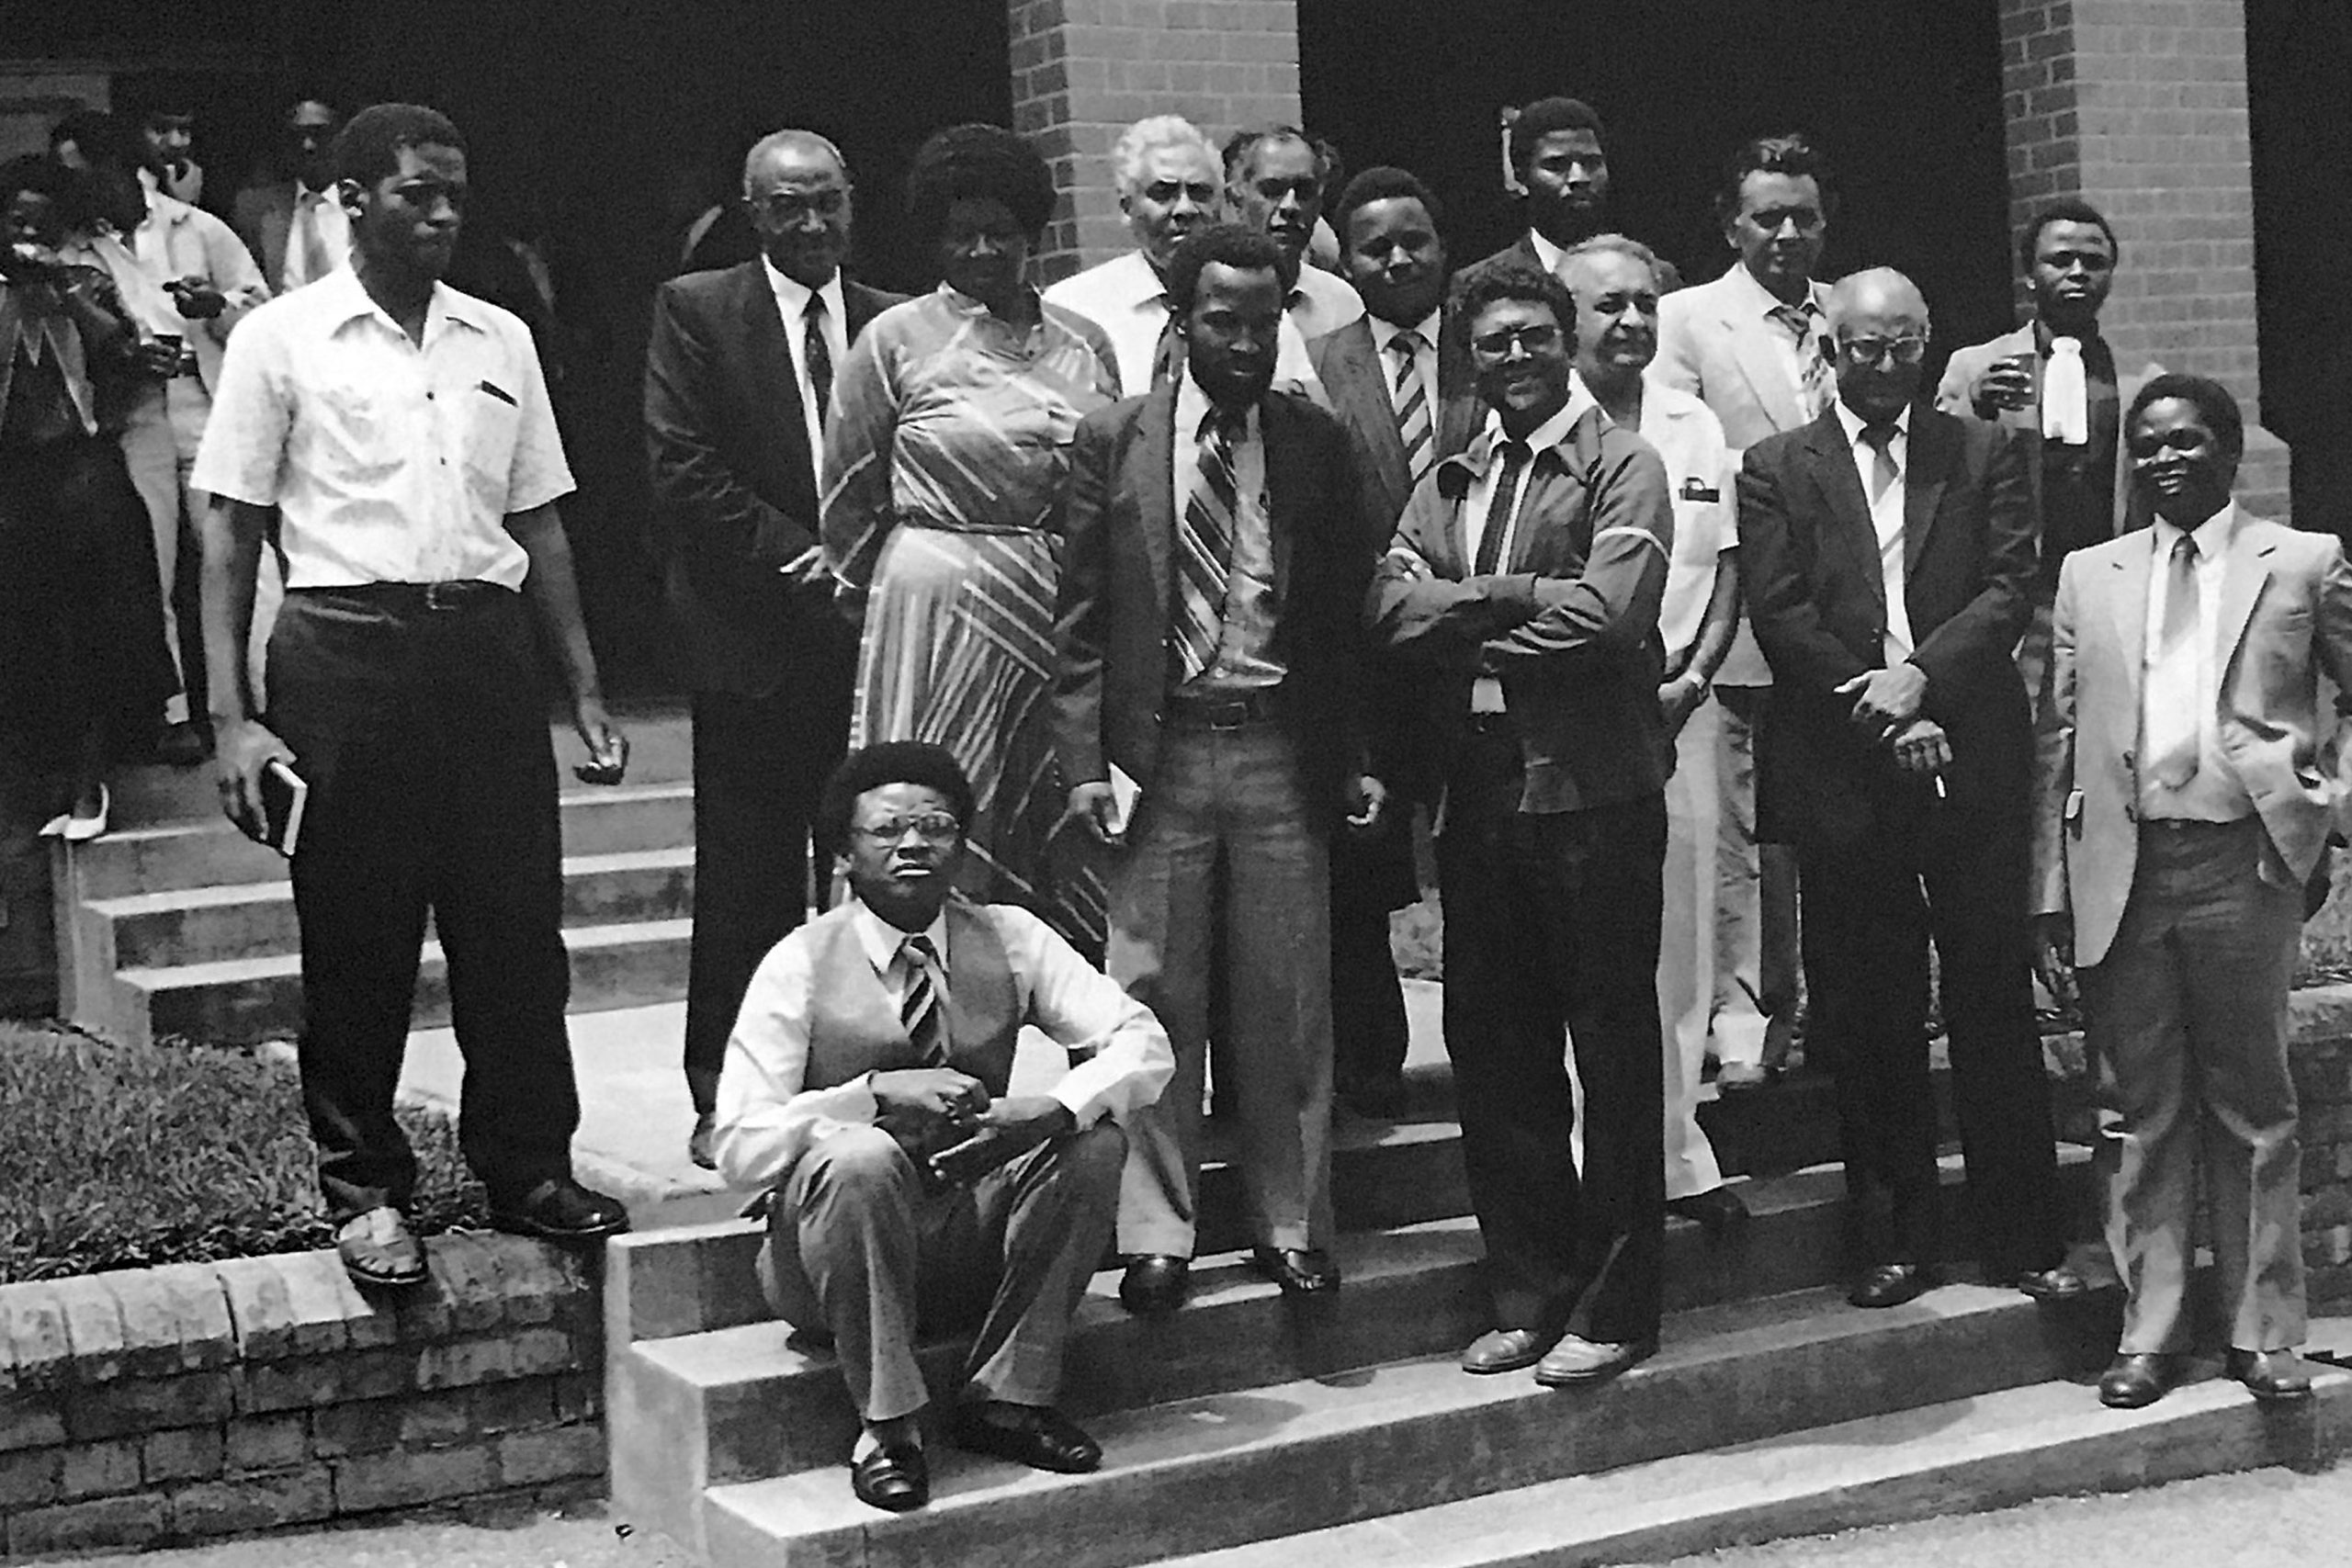 Undated: Sixteen members of the United Democratic Front were accused of treason in the Pietermaritzburg Supreme Court. Paul David is standing third from the left in the front row. (Photograph supplied by UKZN Archives, Documentation Centre)